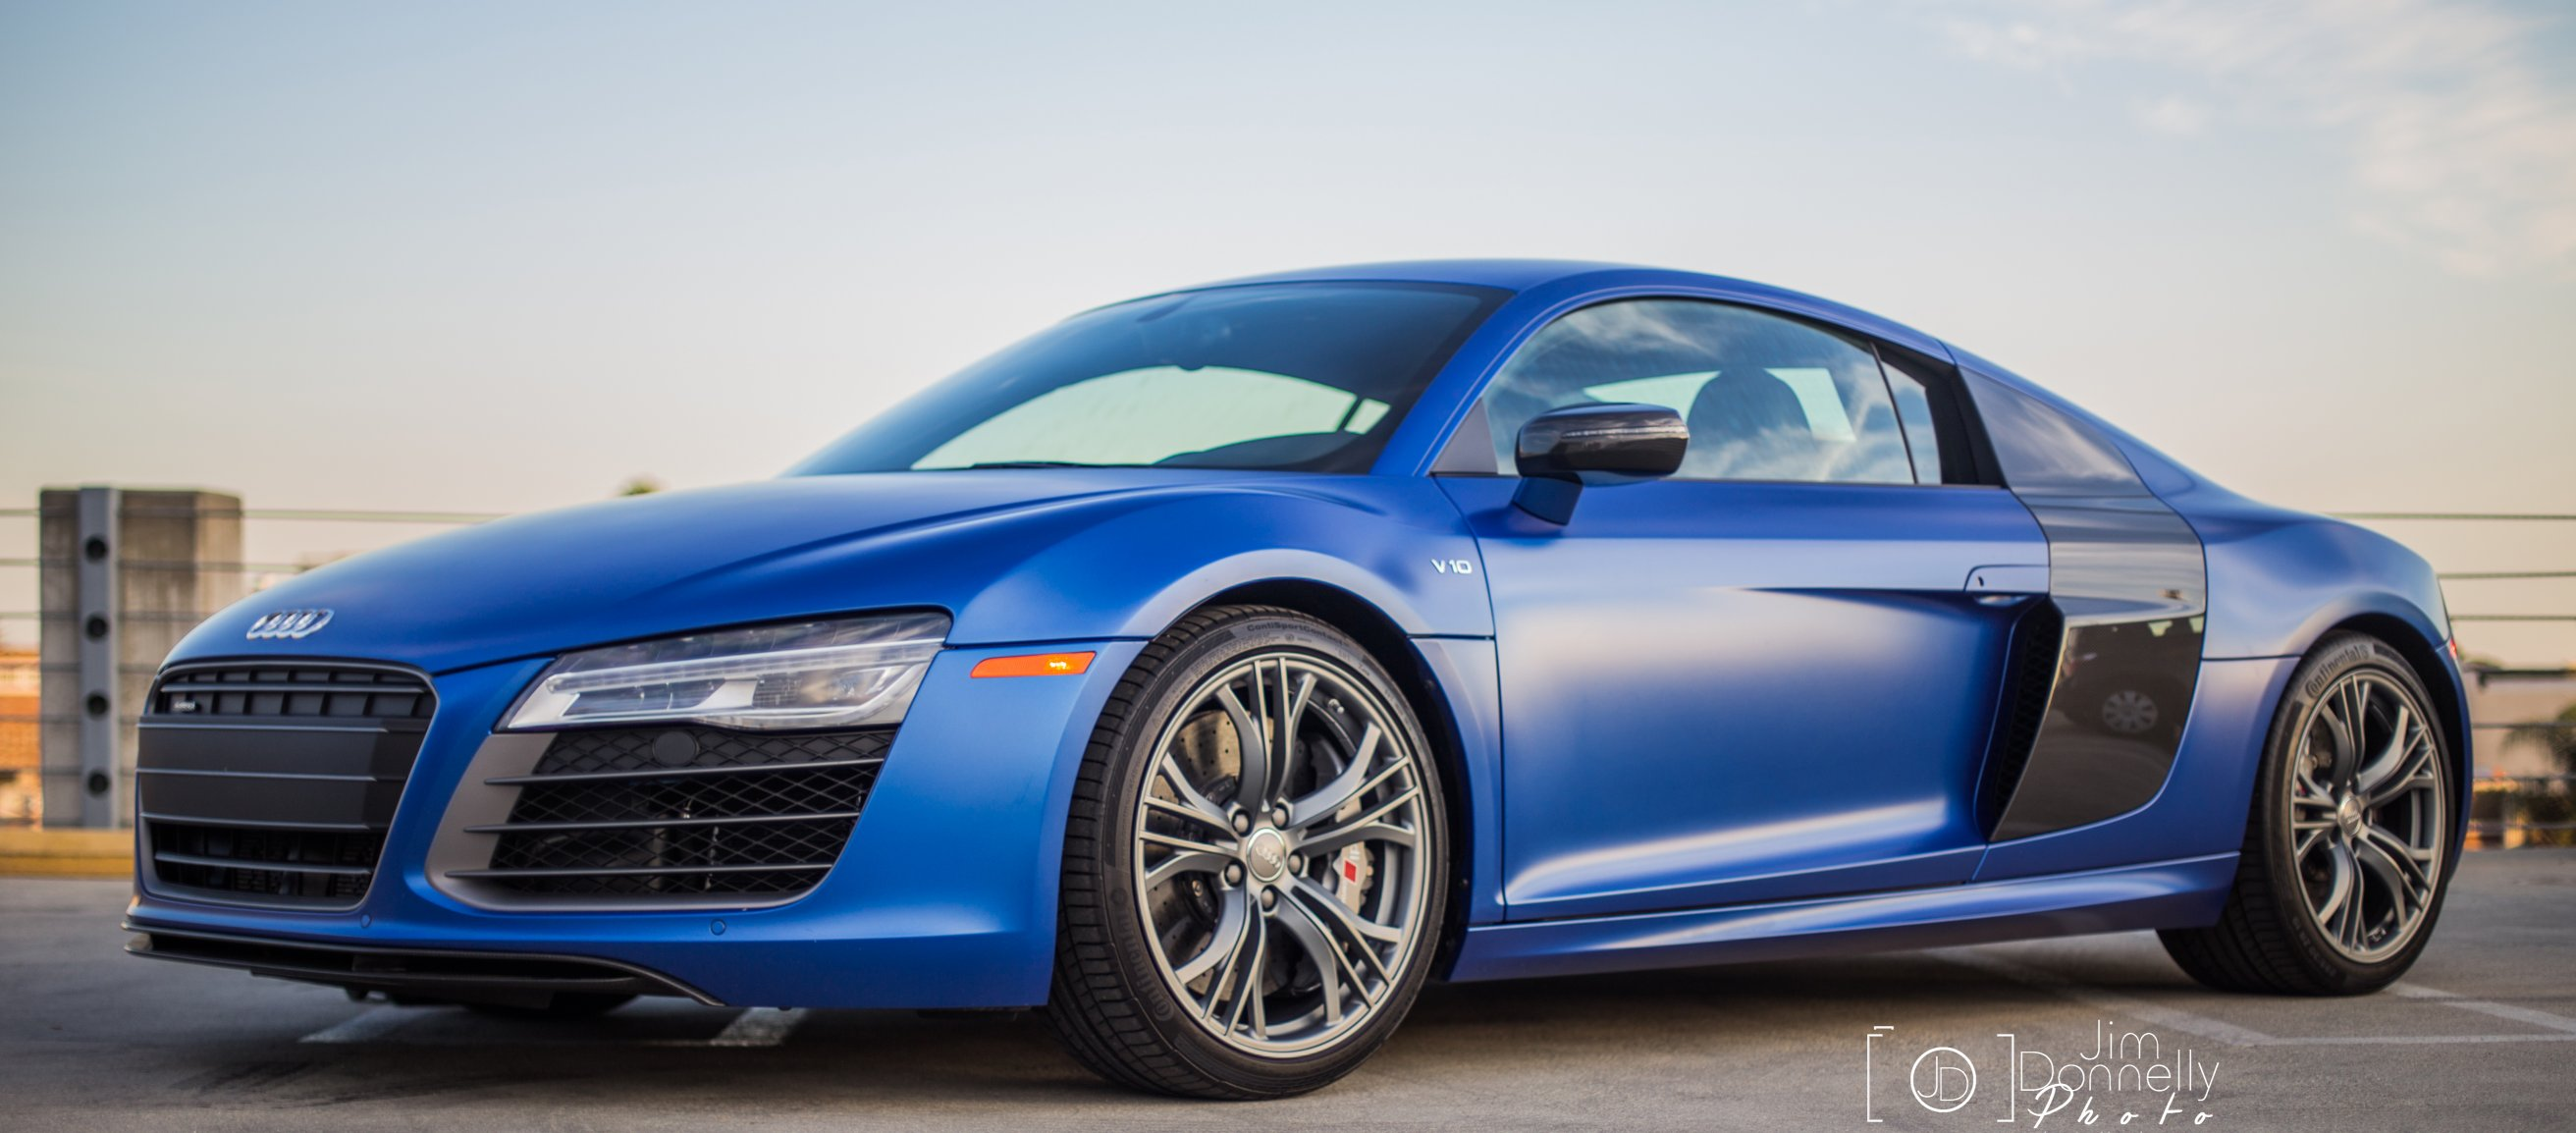 2014 audi r8 v10 plus something borrowed something blue the ignition blog. Black Bedroom Furniture Sets. Home Design Ideas